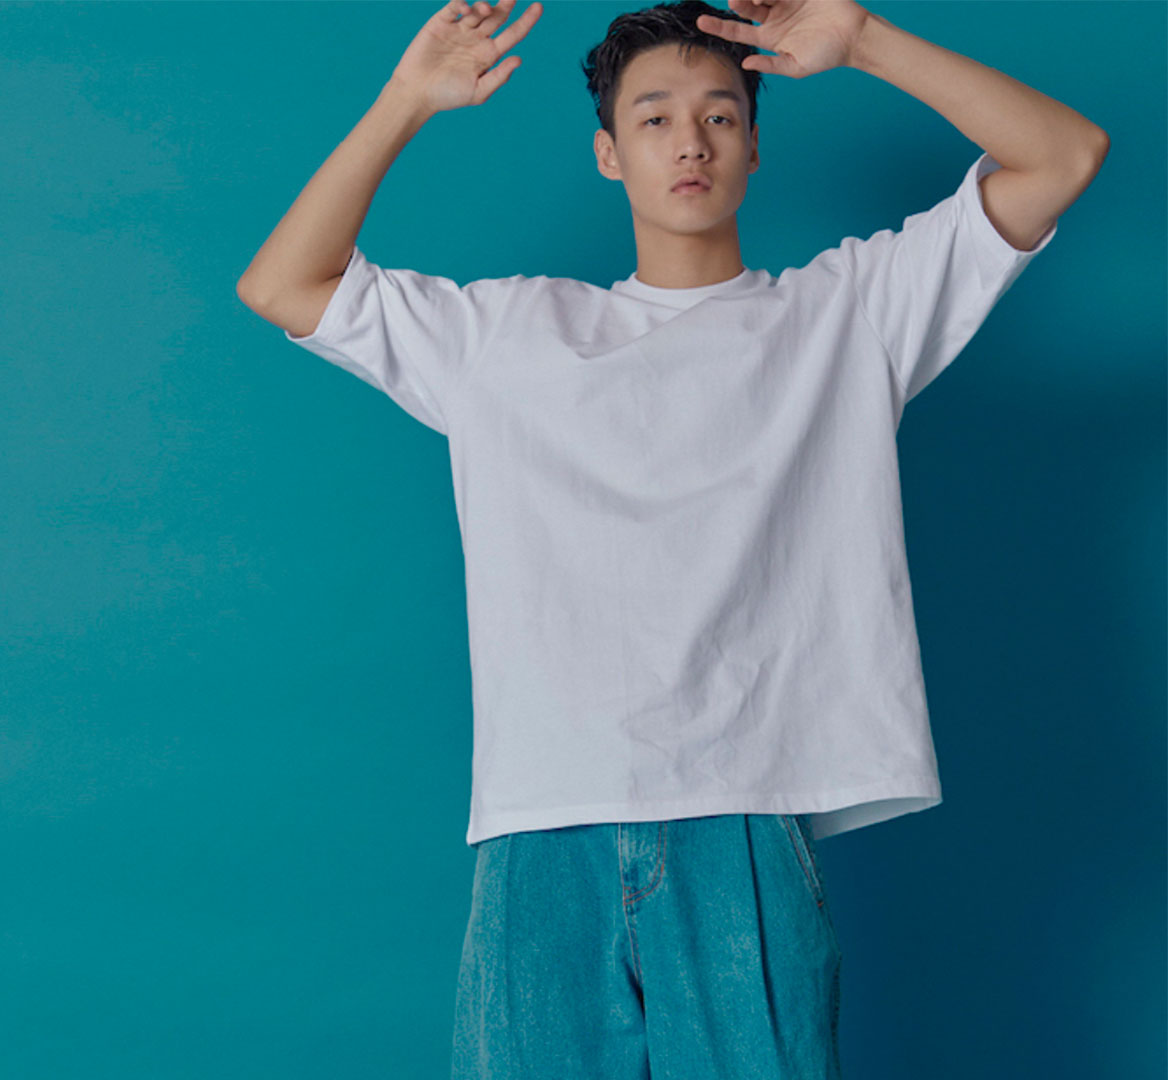 8 Korean Streetwear Brands You Need To Know About // ONE8pm